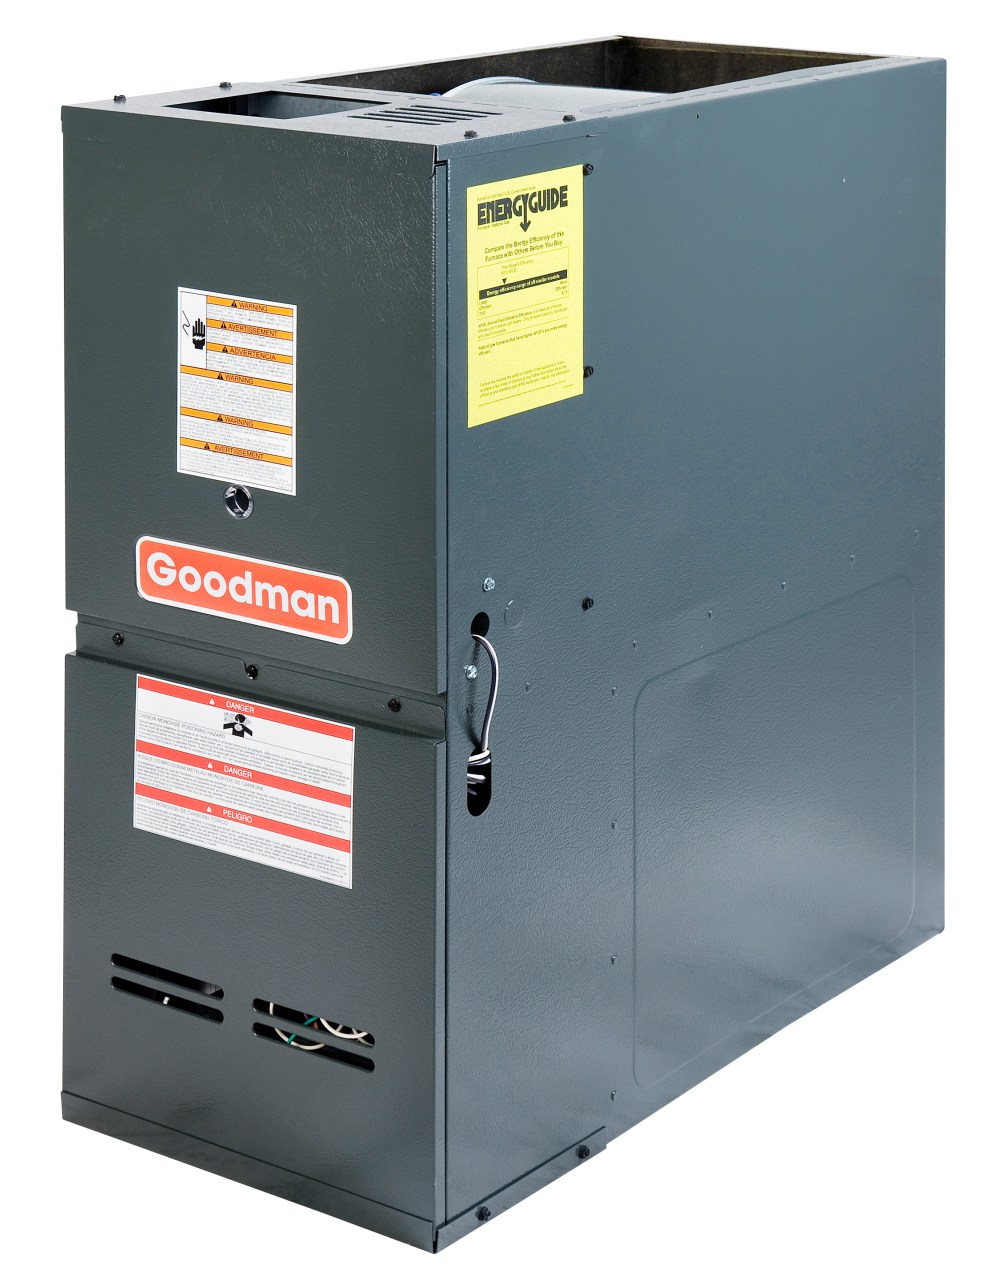 medium resolution of goodman gdh81005cn 100 000 btu furnace 80 efficiency 2 stage burner 2 000 cfm multi speed blower dedicated downflow application